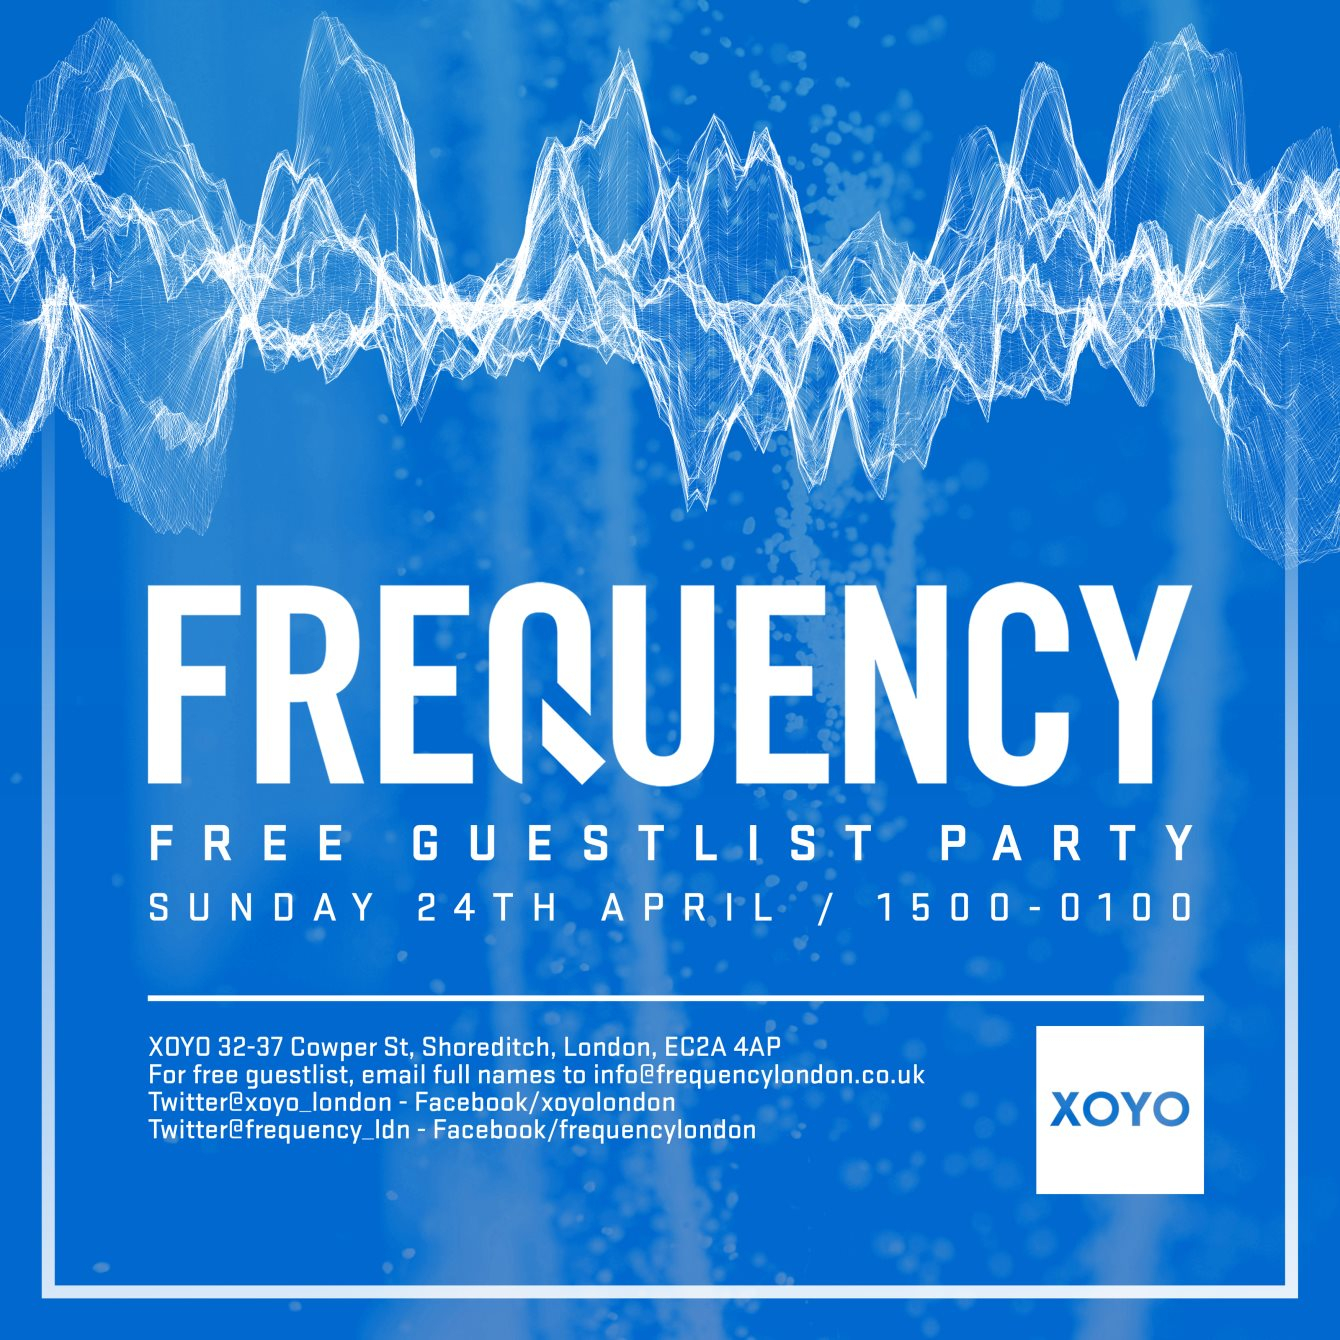 RA: Frequency - Free Guest List Party at XOYO, London (2016)